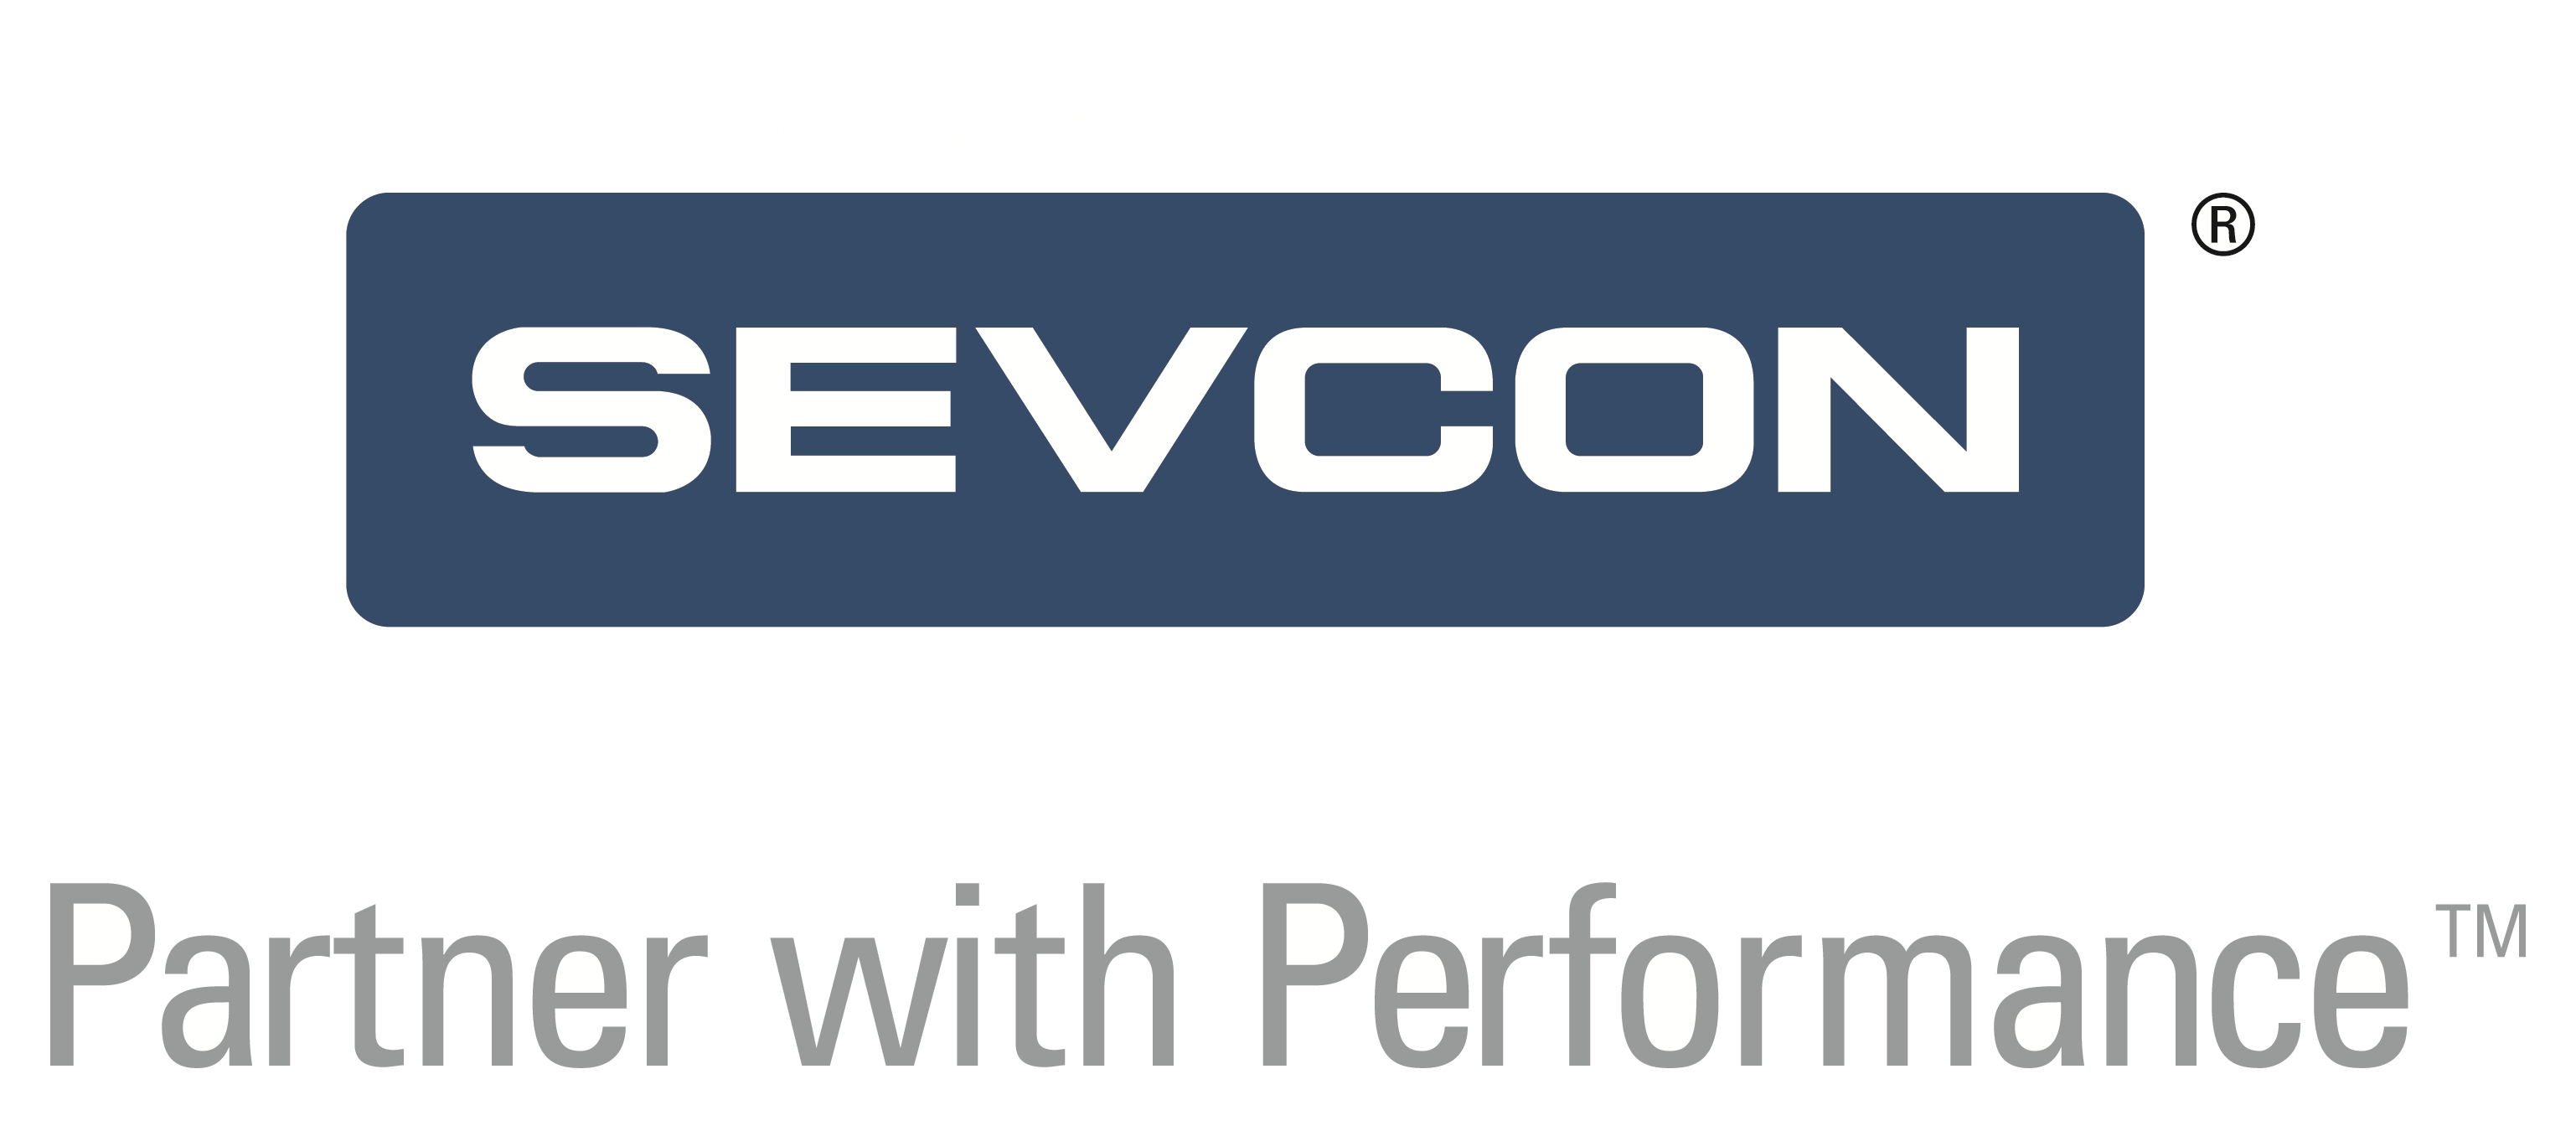 Sevcon Secures Grant to Develop New Range of Controllers for Electric and Hybrid Vehicles